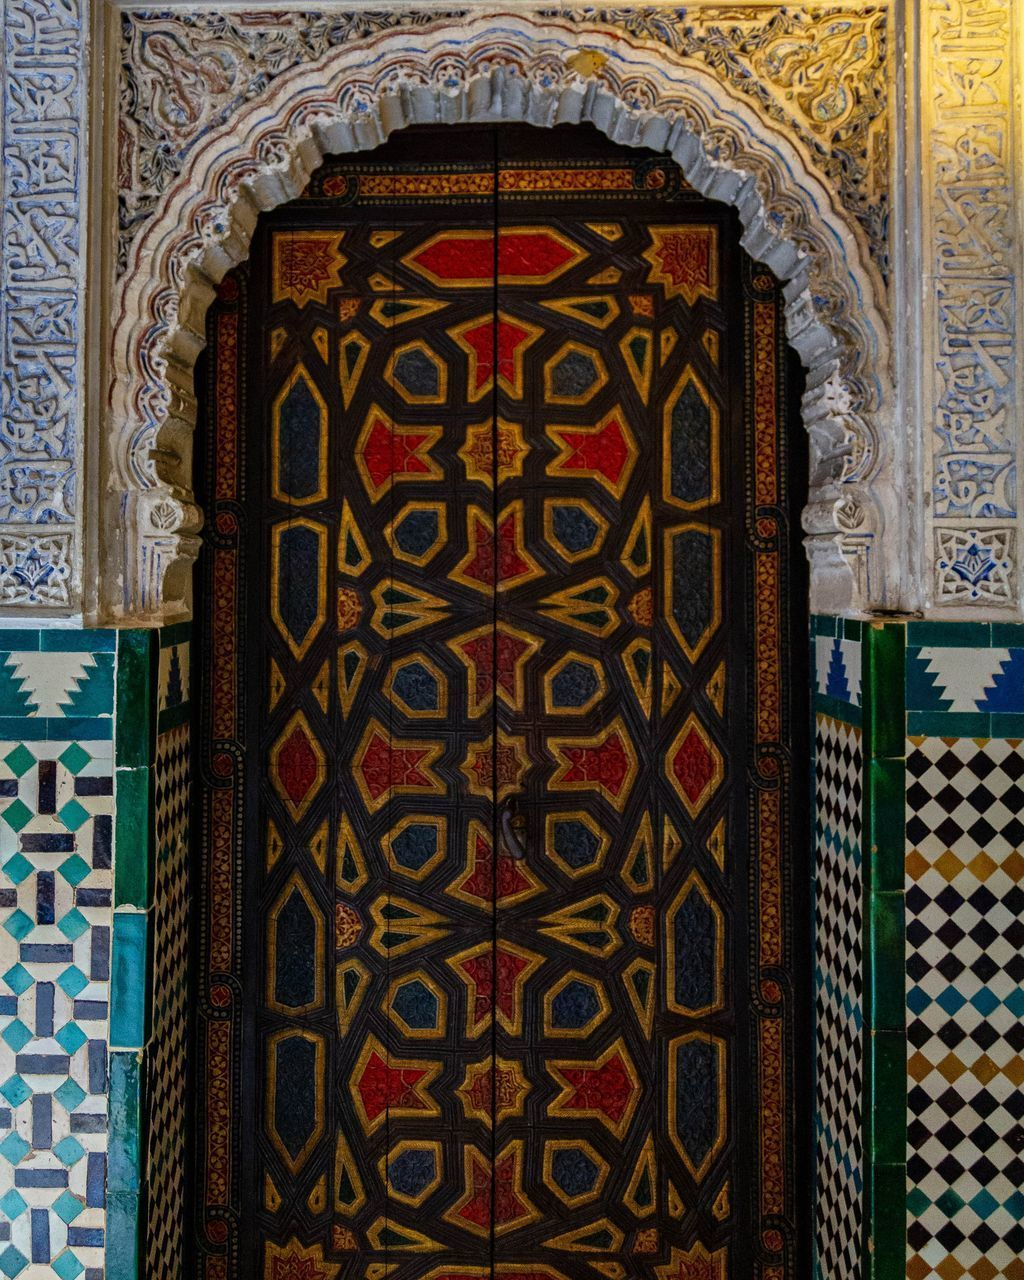 architecture, design, pattern, built structure, multi colored, ornate, art and craft, building, no people, indoors, day, entrance, close-up, wall - building feature, door, craft, creativity, decoration, religion, glass, floral pattern, architectural column, mural